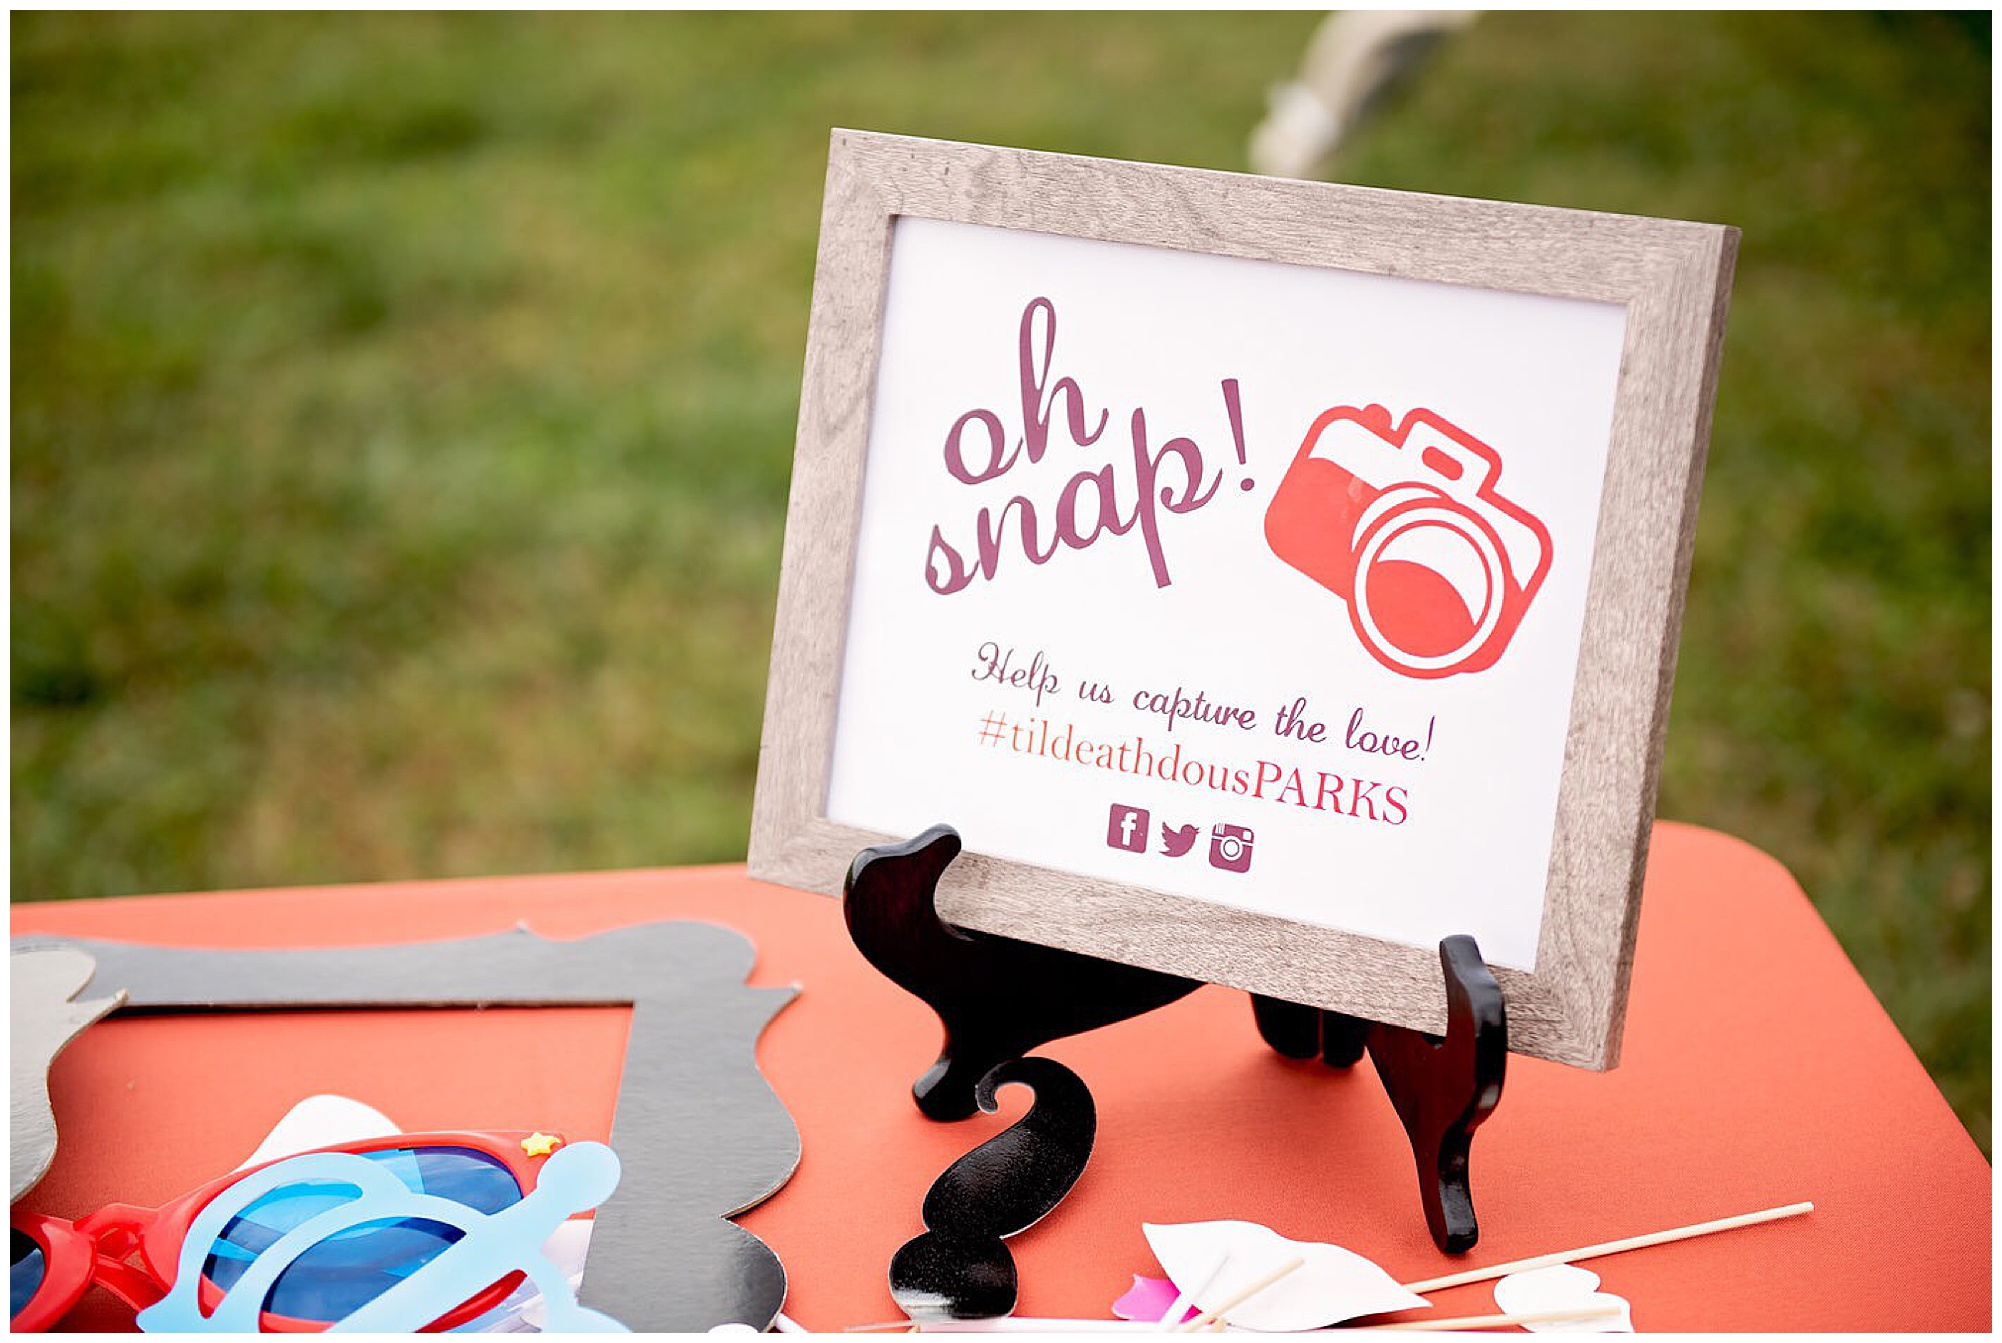 wedding signage on prop table for photobooth  at wedding. Photography by Jennifer Madino Photography